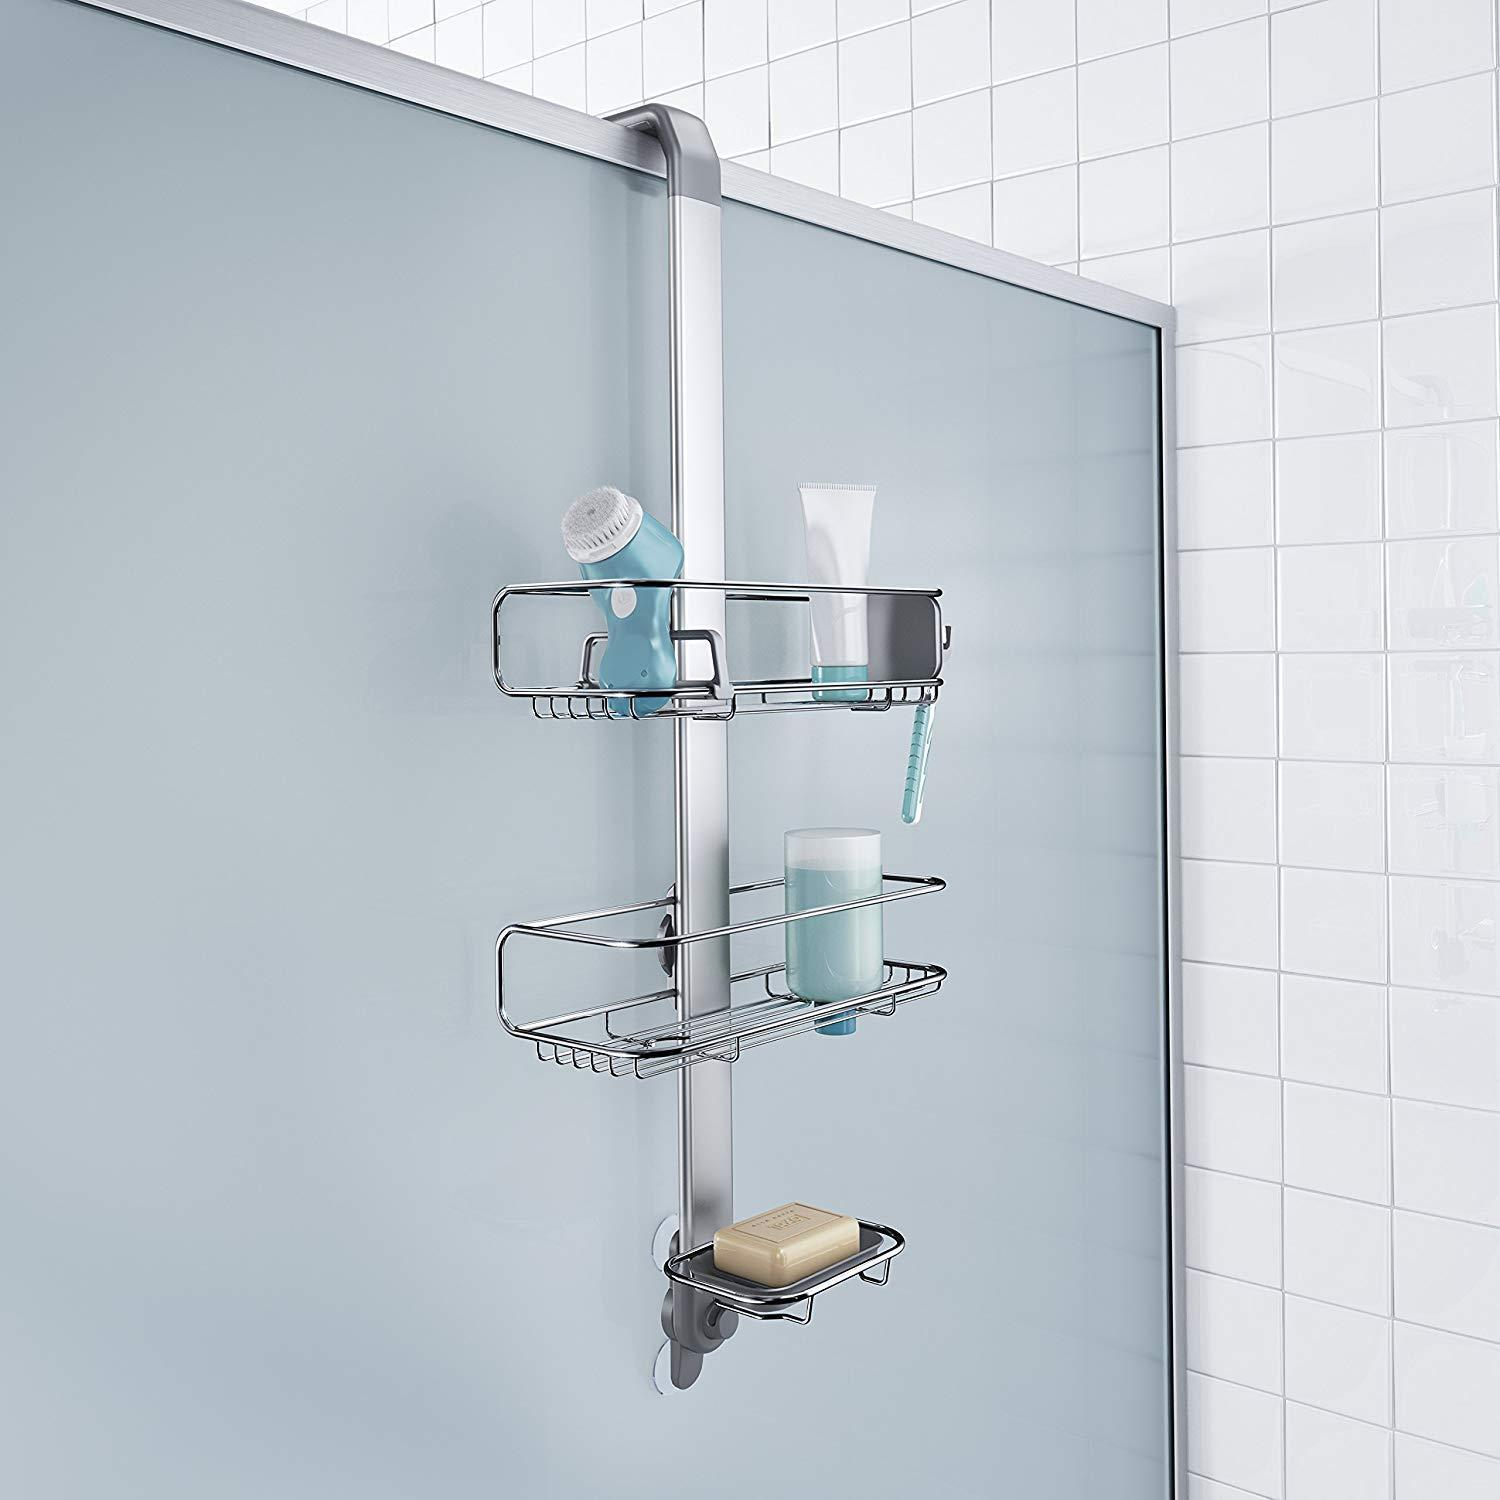 Adjustable Shower Door Candy Shampoo Soap and 50 similar items